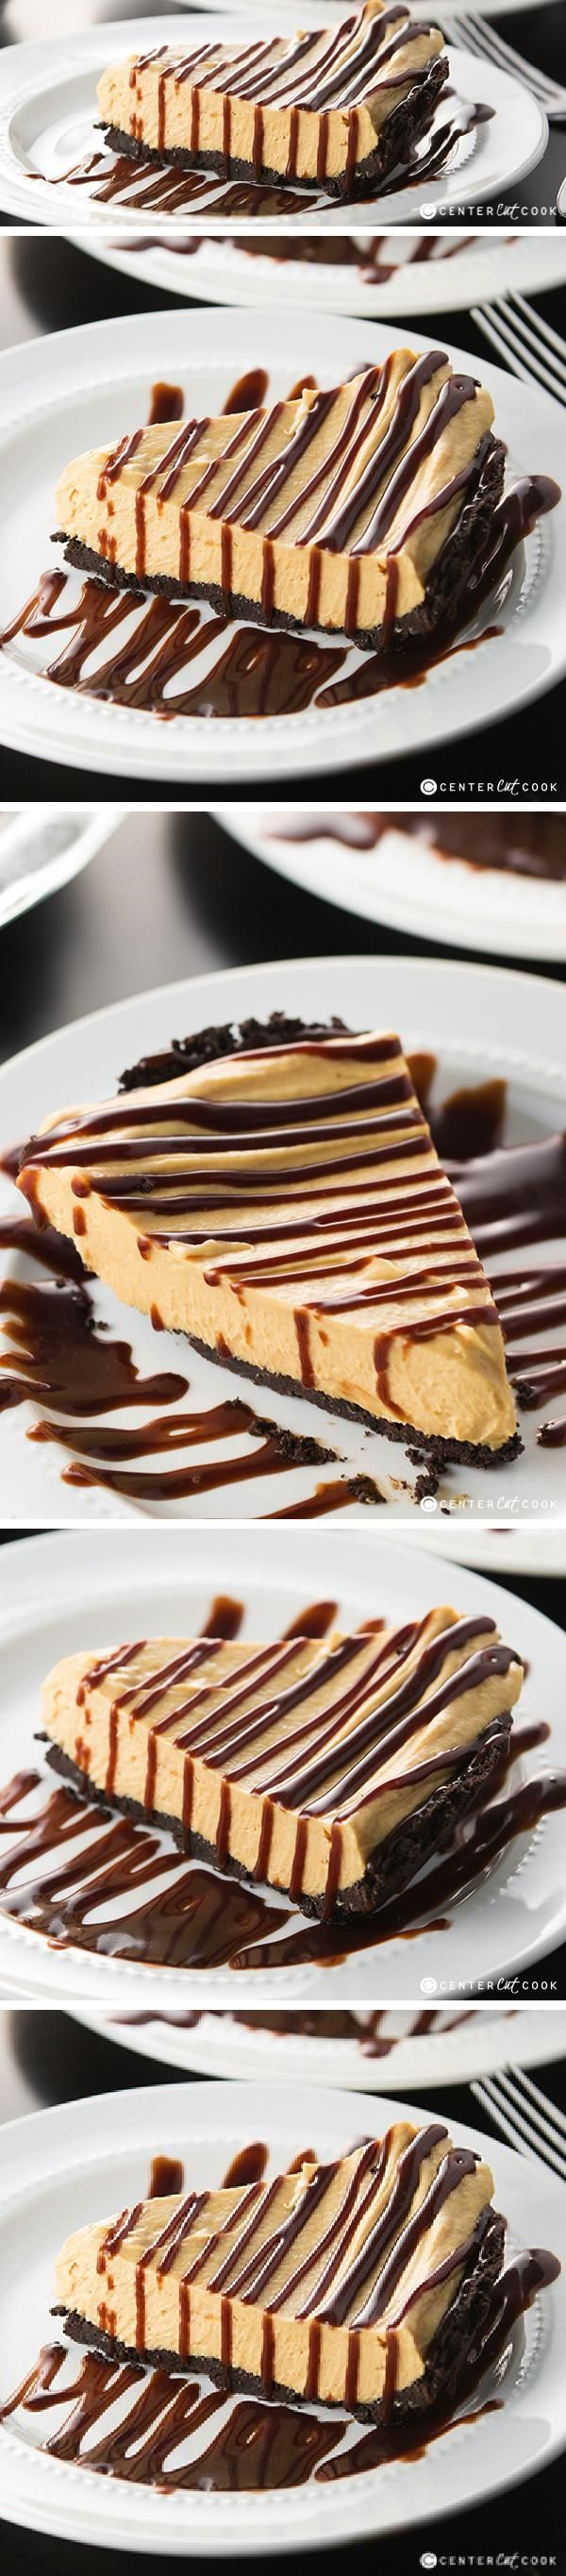 Decadent PEANUT BUTTER FUDGE PIE with an Oreo cookie crust, and creamy peanut butter filling made with cool whip and cream cheese. Topped with hot fudge, Peanut Butter Fudge Pie is a must-make!